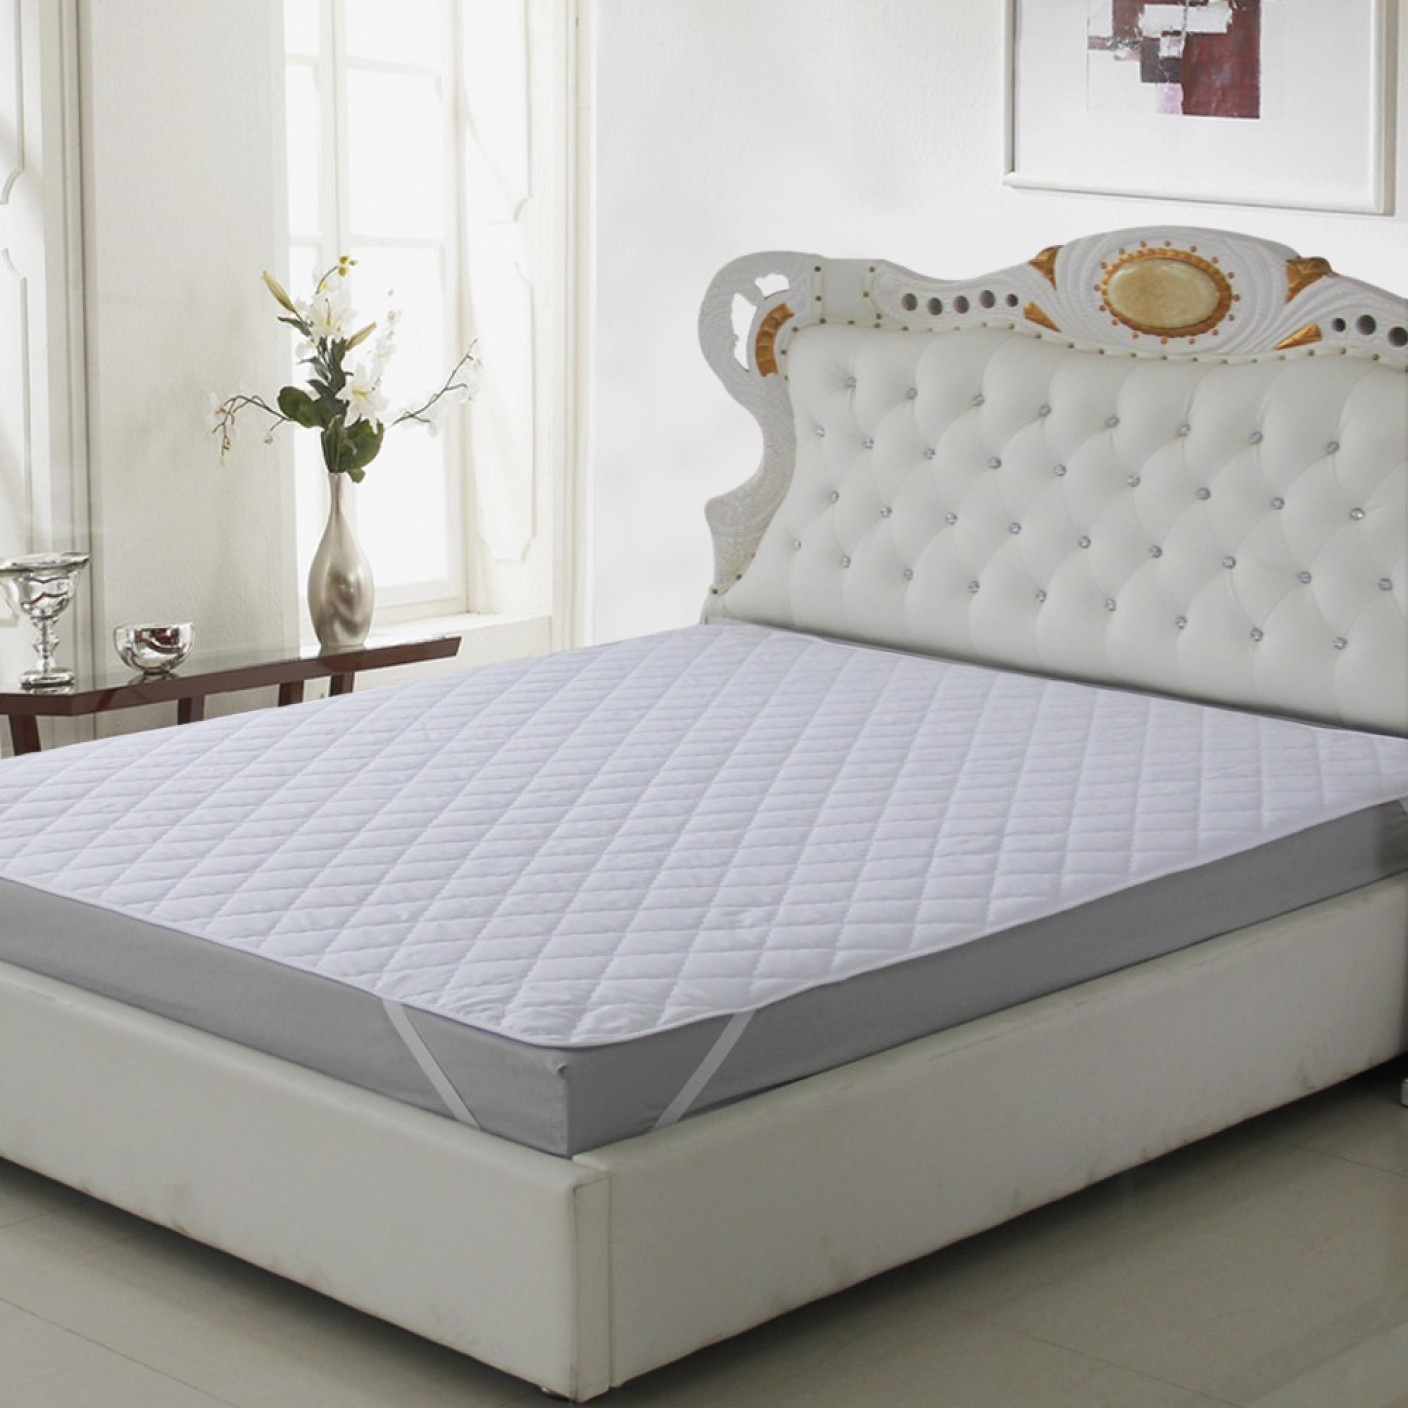 Home Originals Elastic Strap King Size Waterproof Mattress